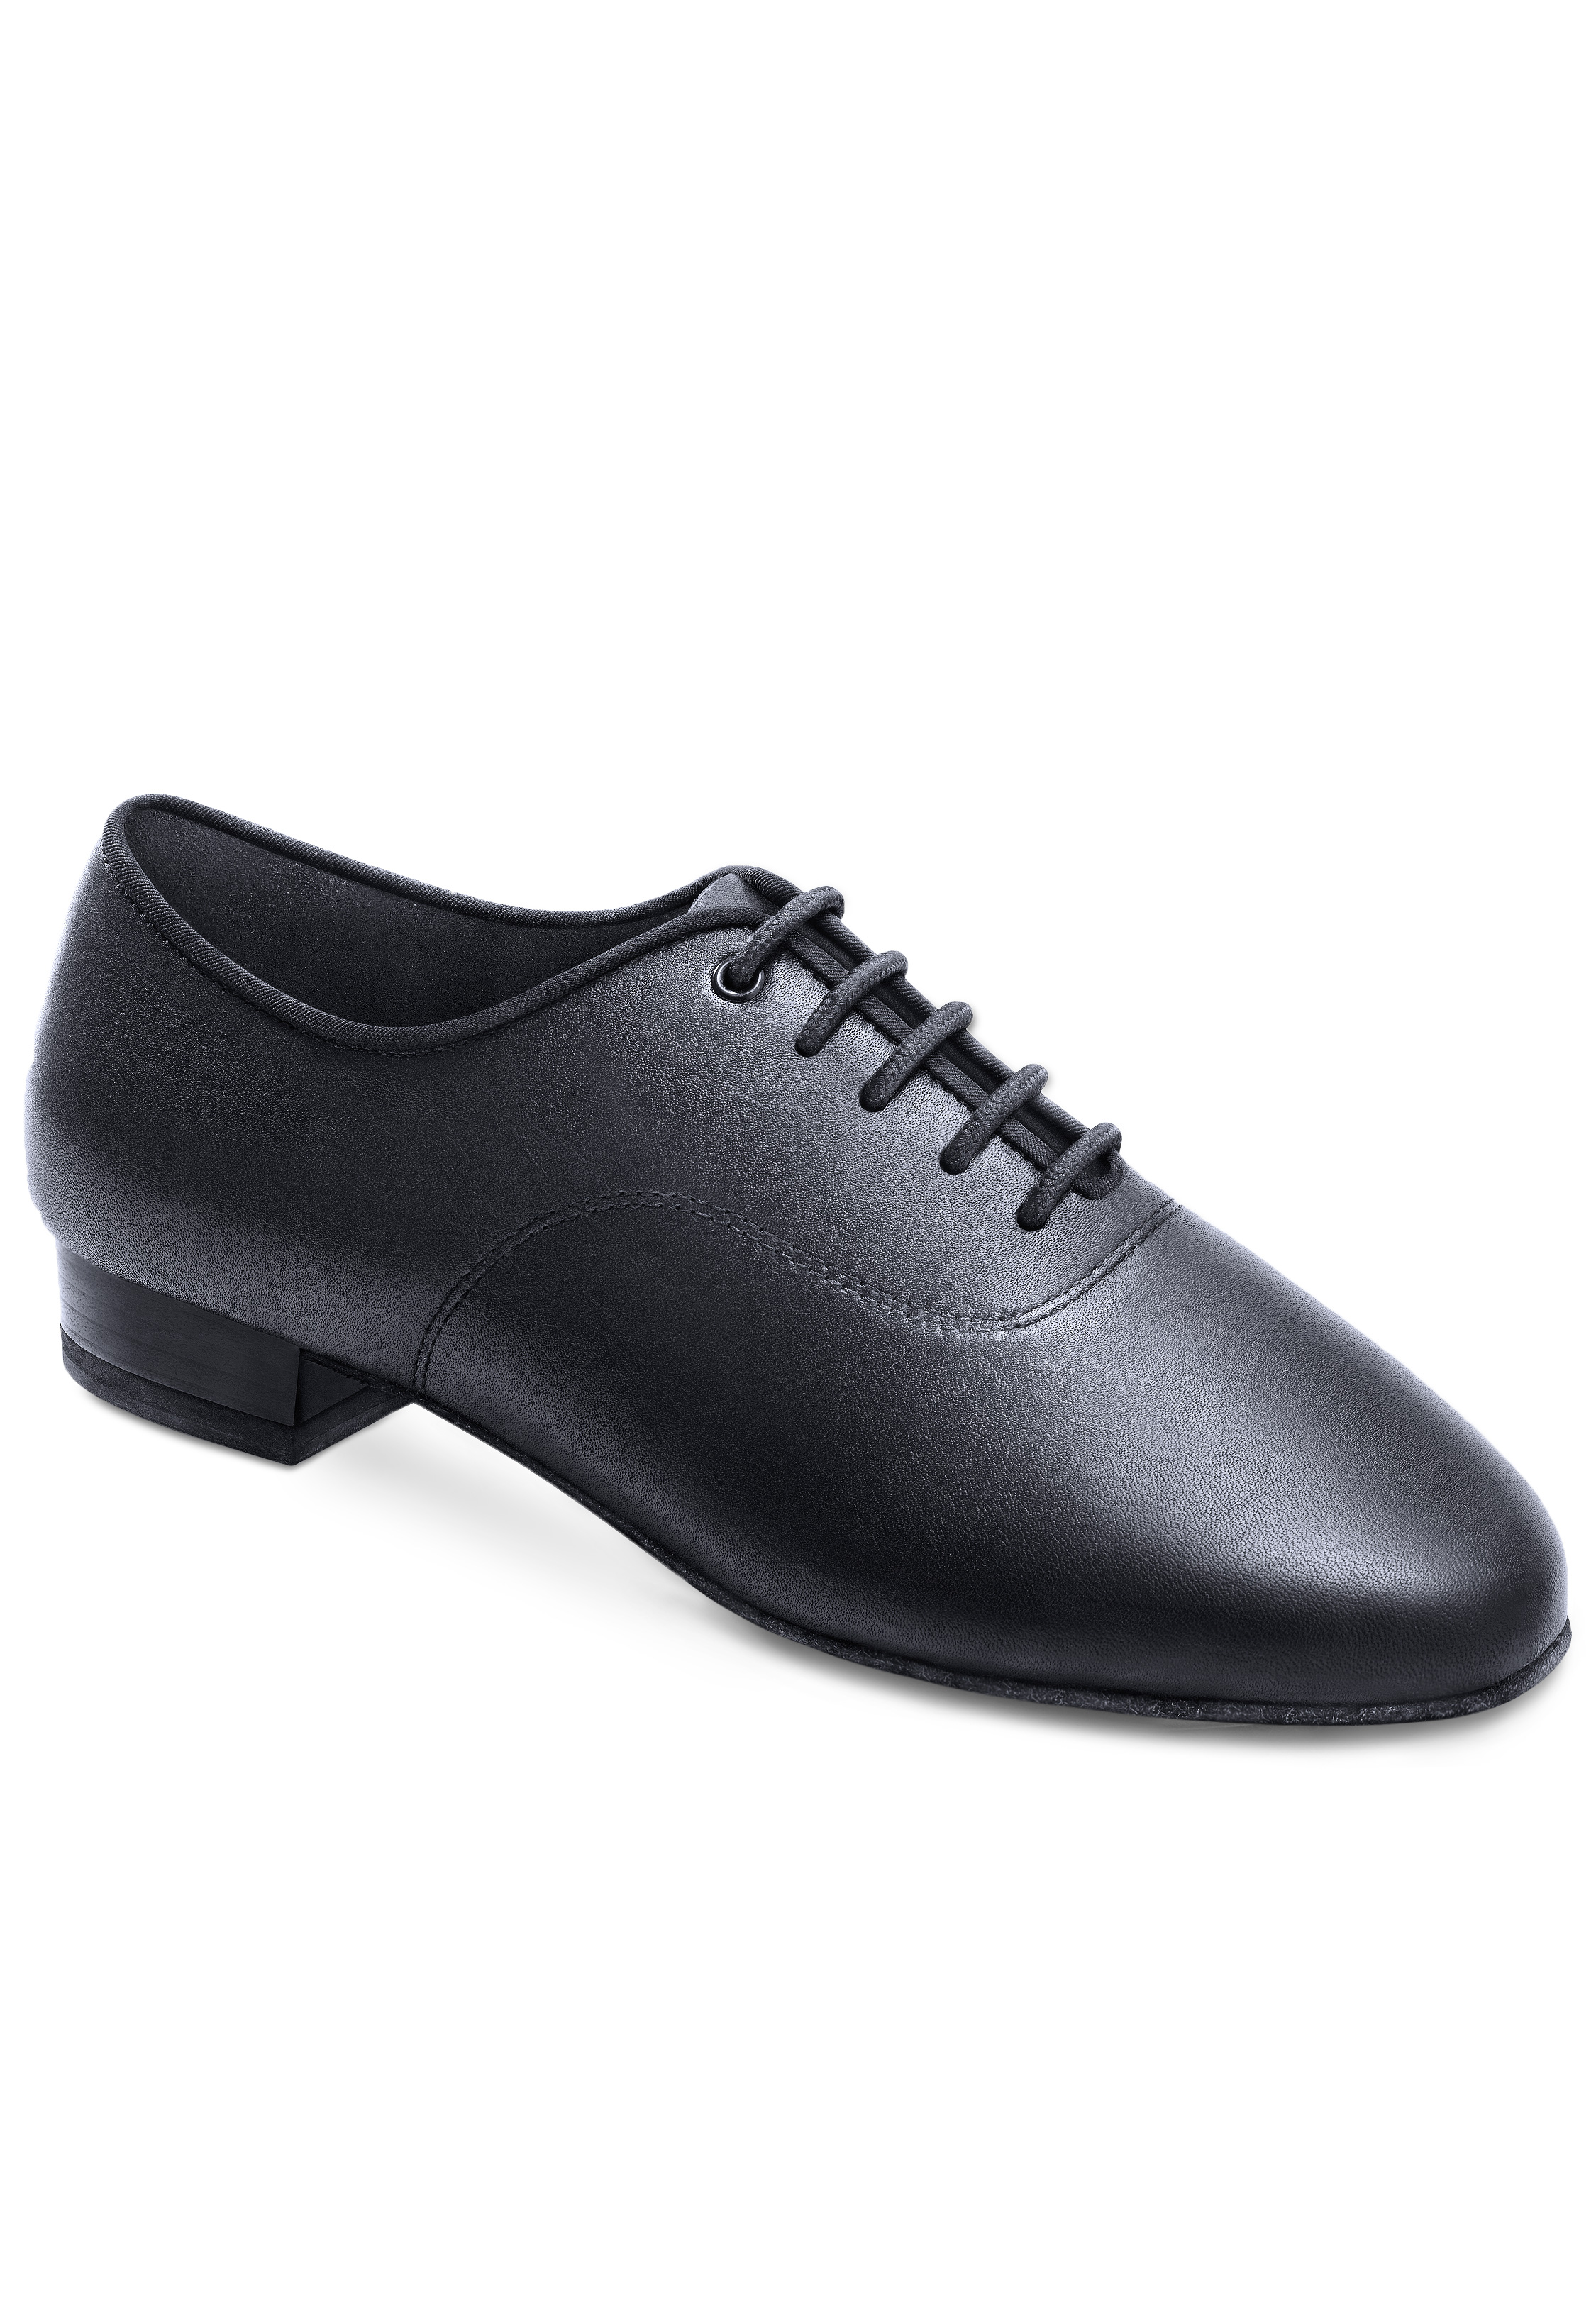 Mens Latin Dance Shoes Black Leather Croc 1 inch Standard and Smooth